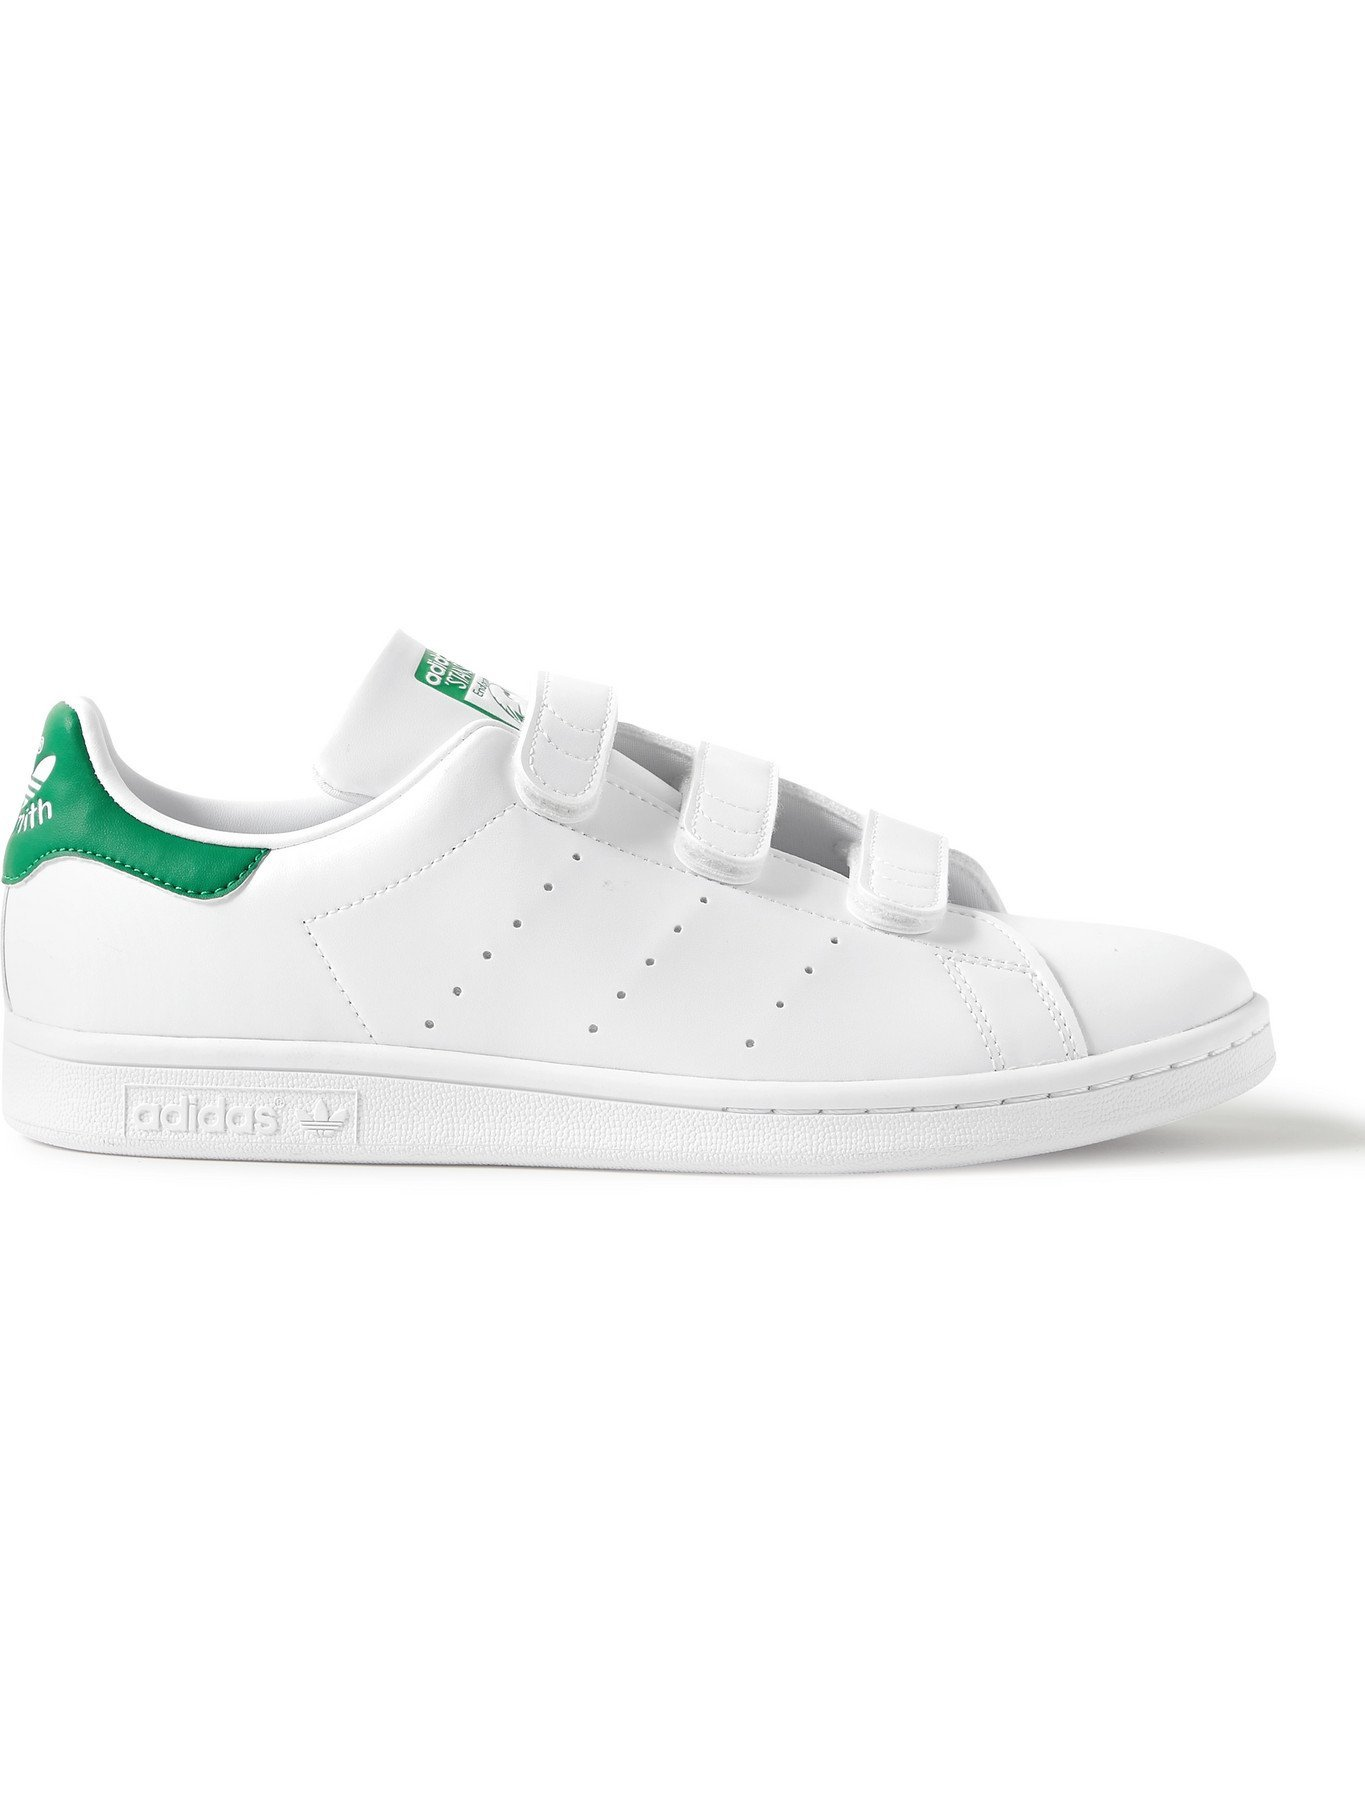 ADIDAS ORIGINALS - Stan Smith Recycled Primegreen Sneakers - White - UK 11